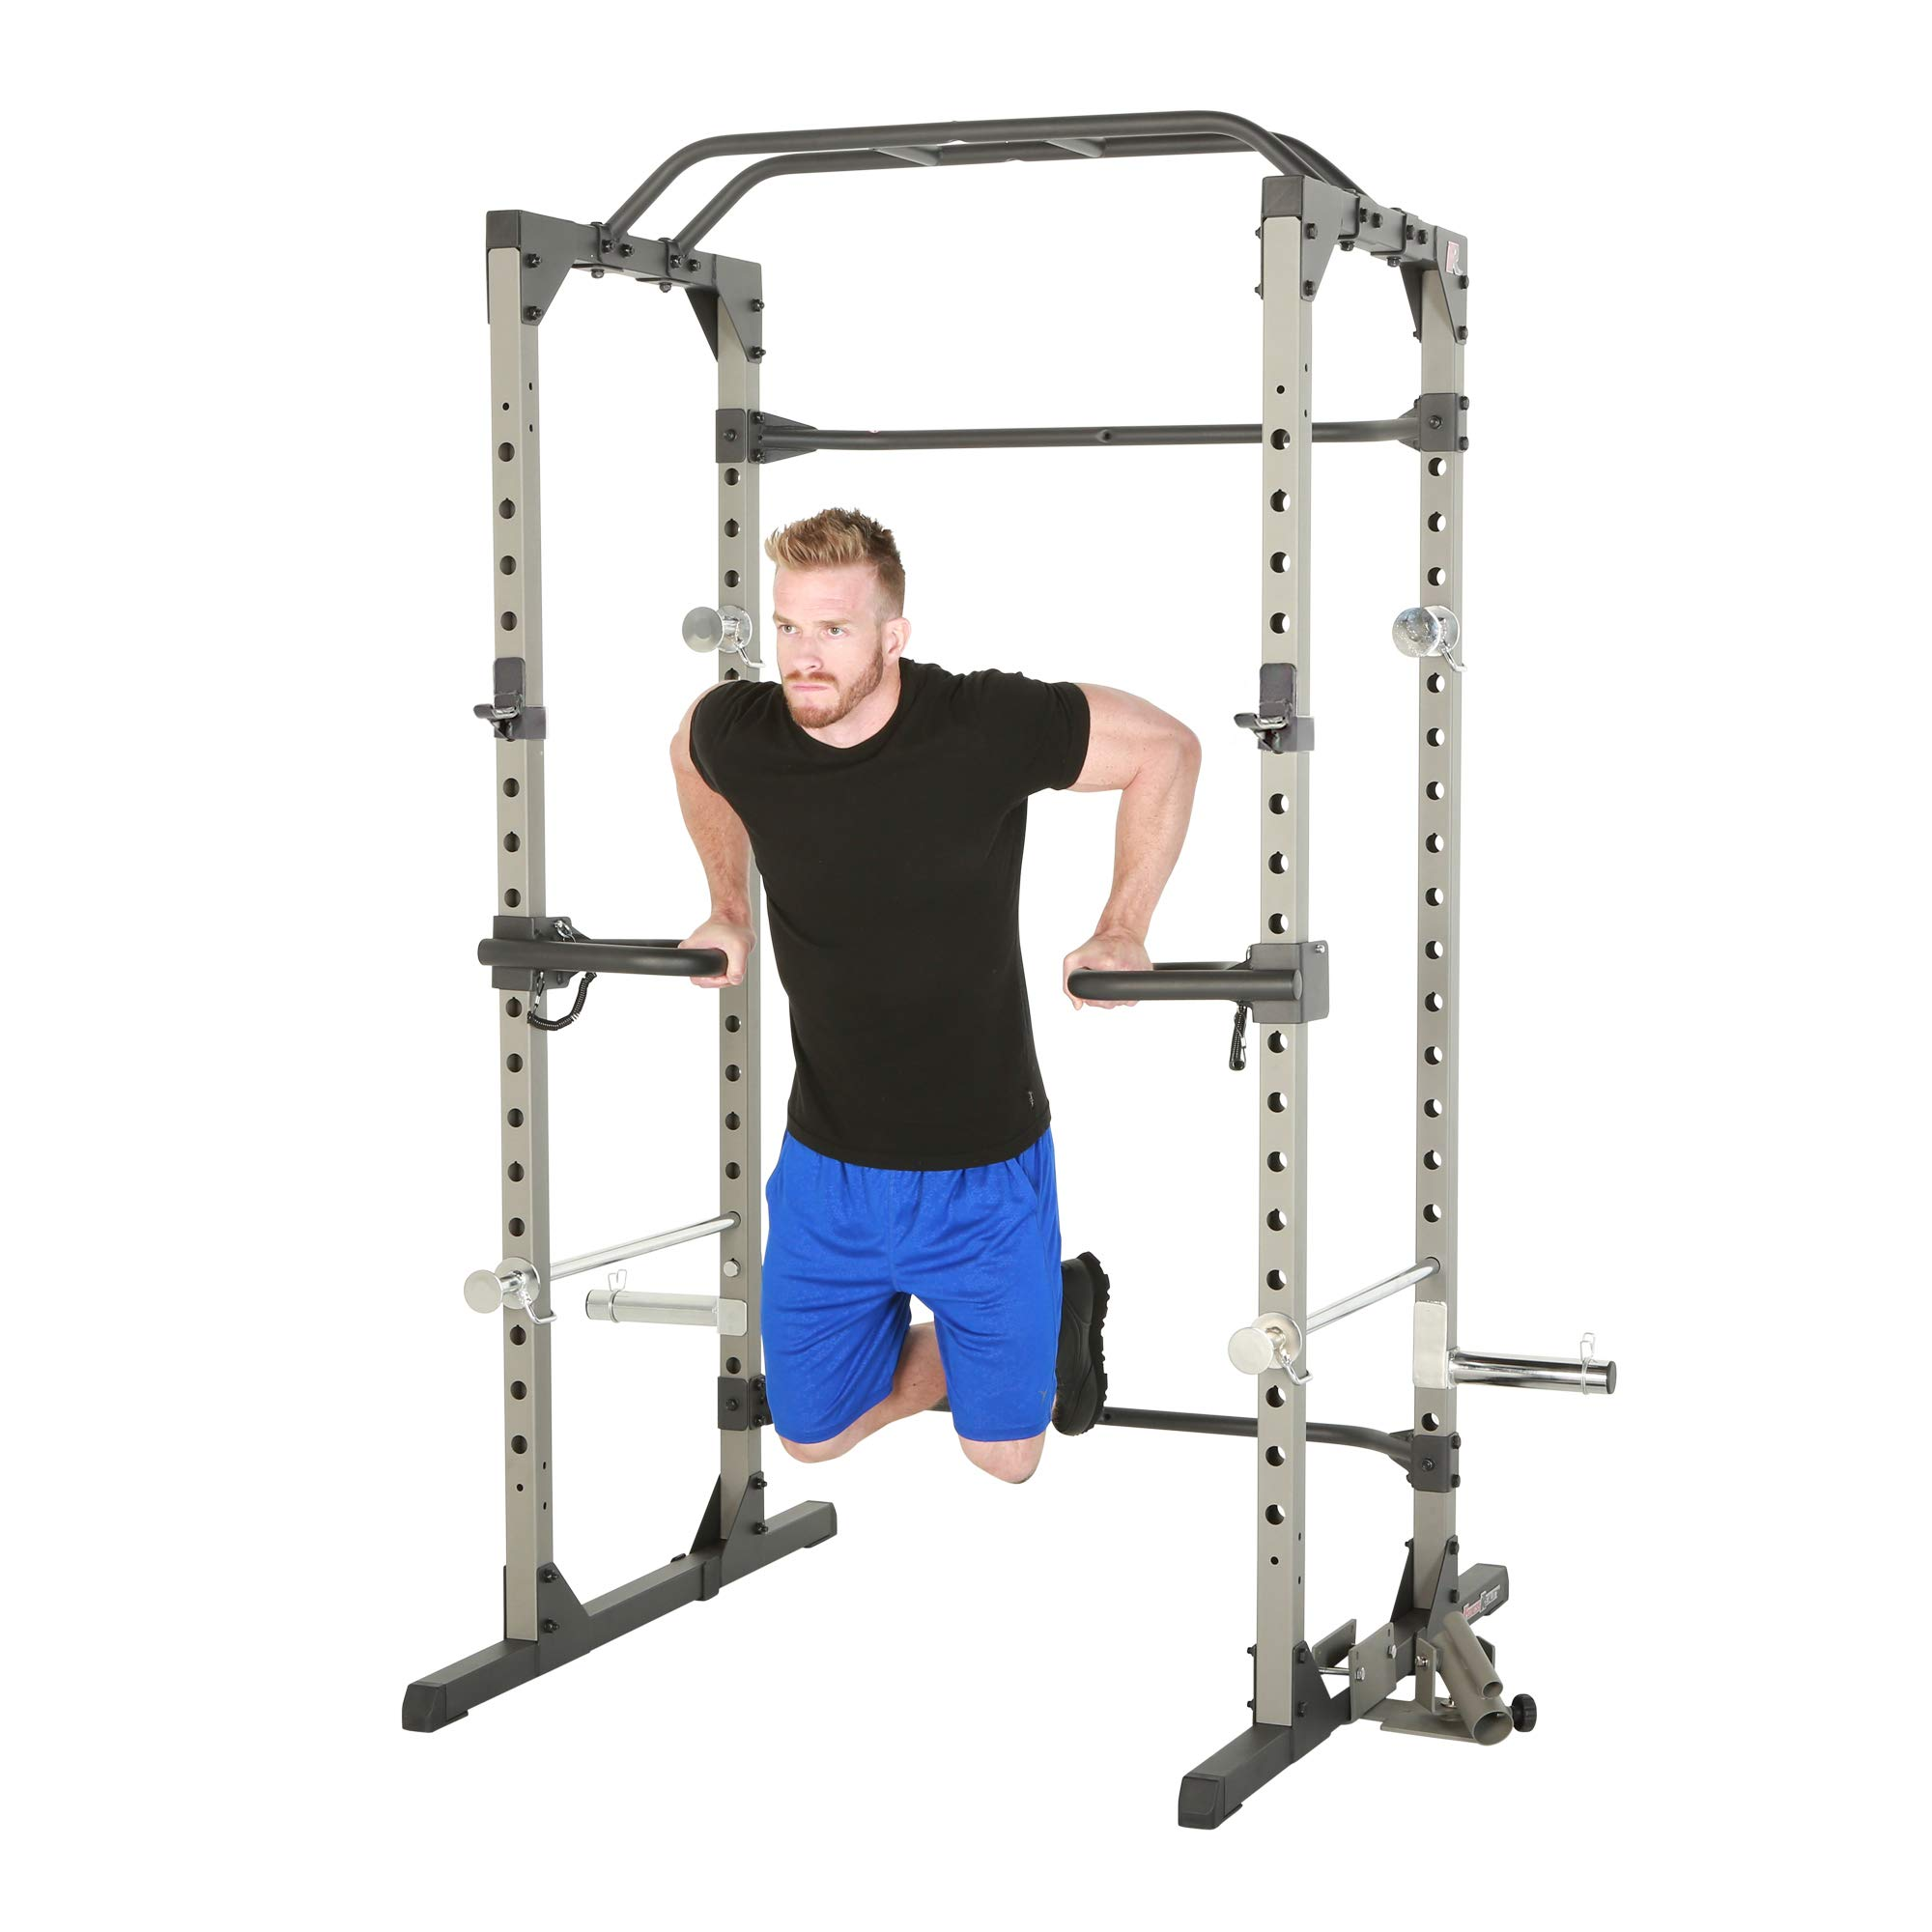 Fitness Reality 2819 Attachment Set for 2''x2'' Steel Tubing Power Cages by Fitness Reality (Image #6)